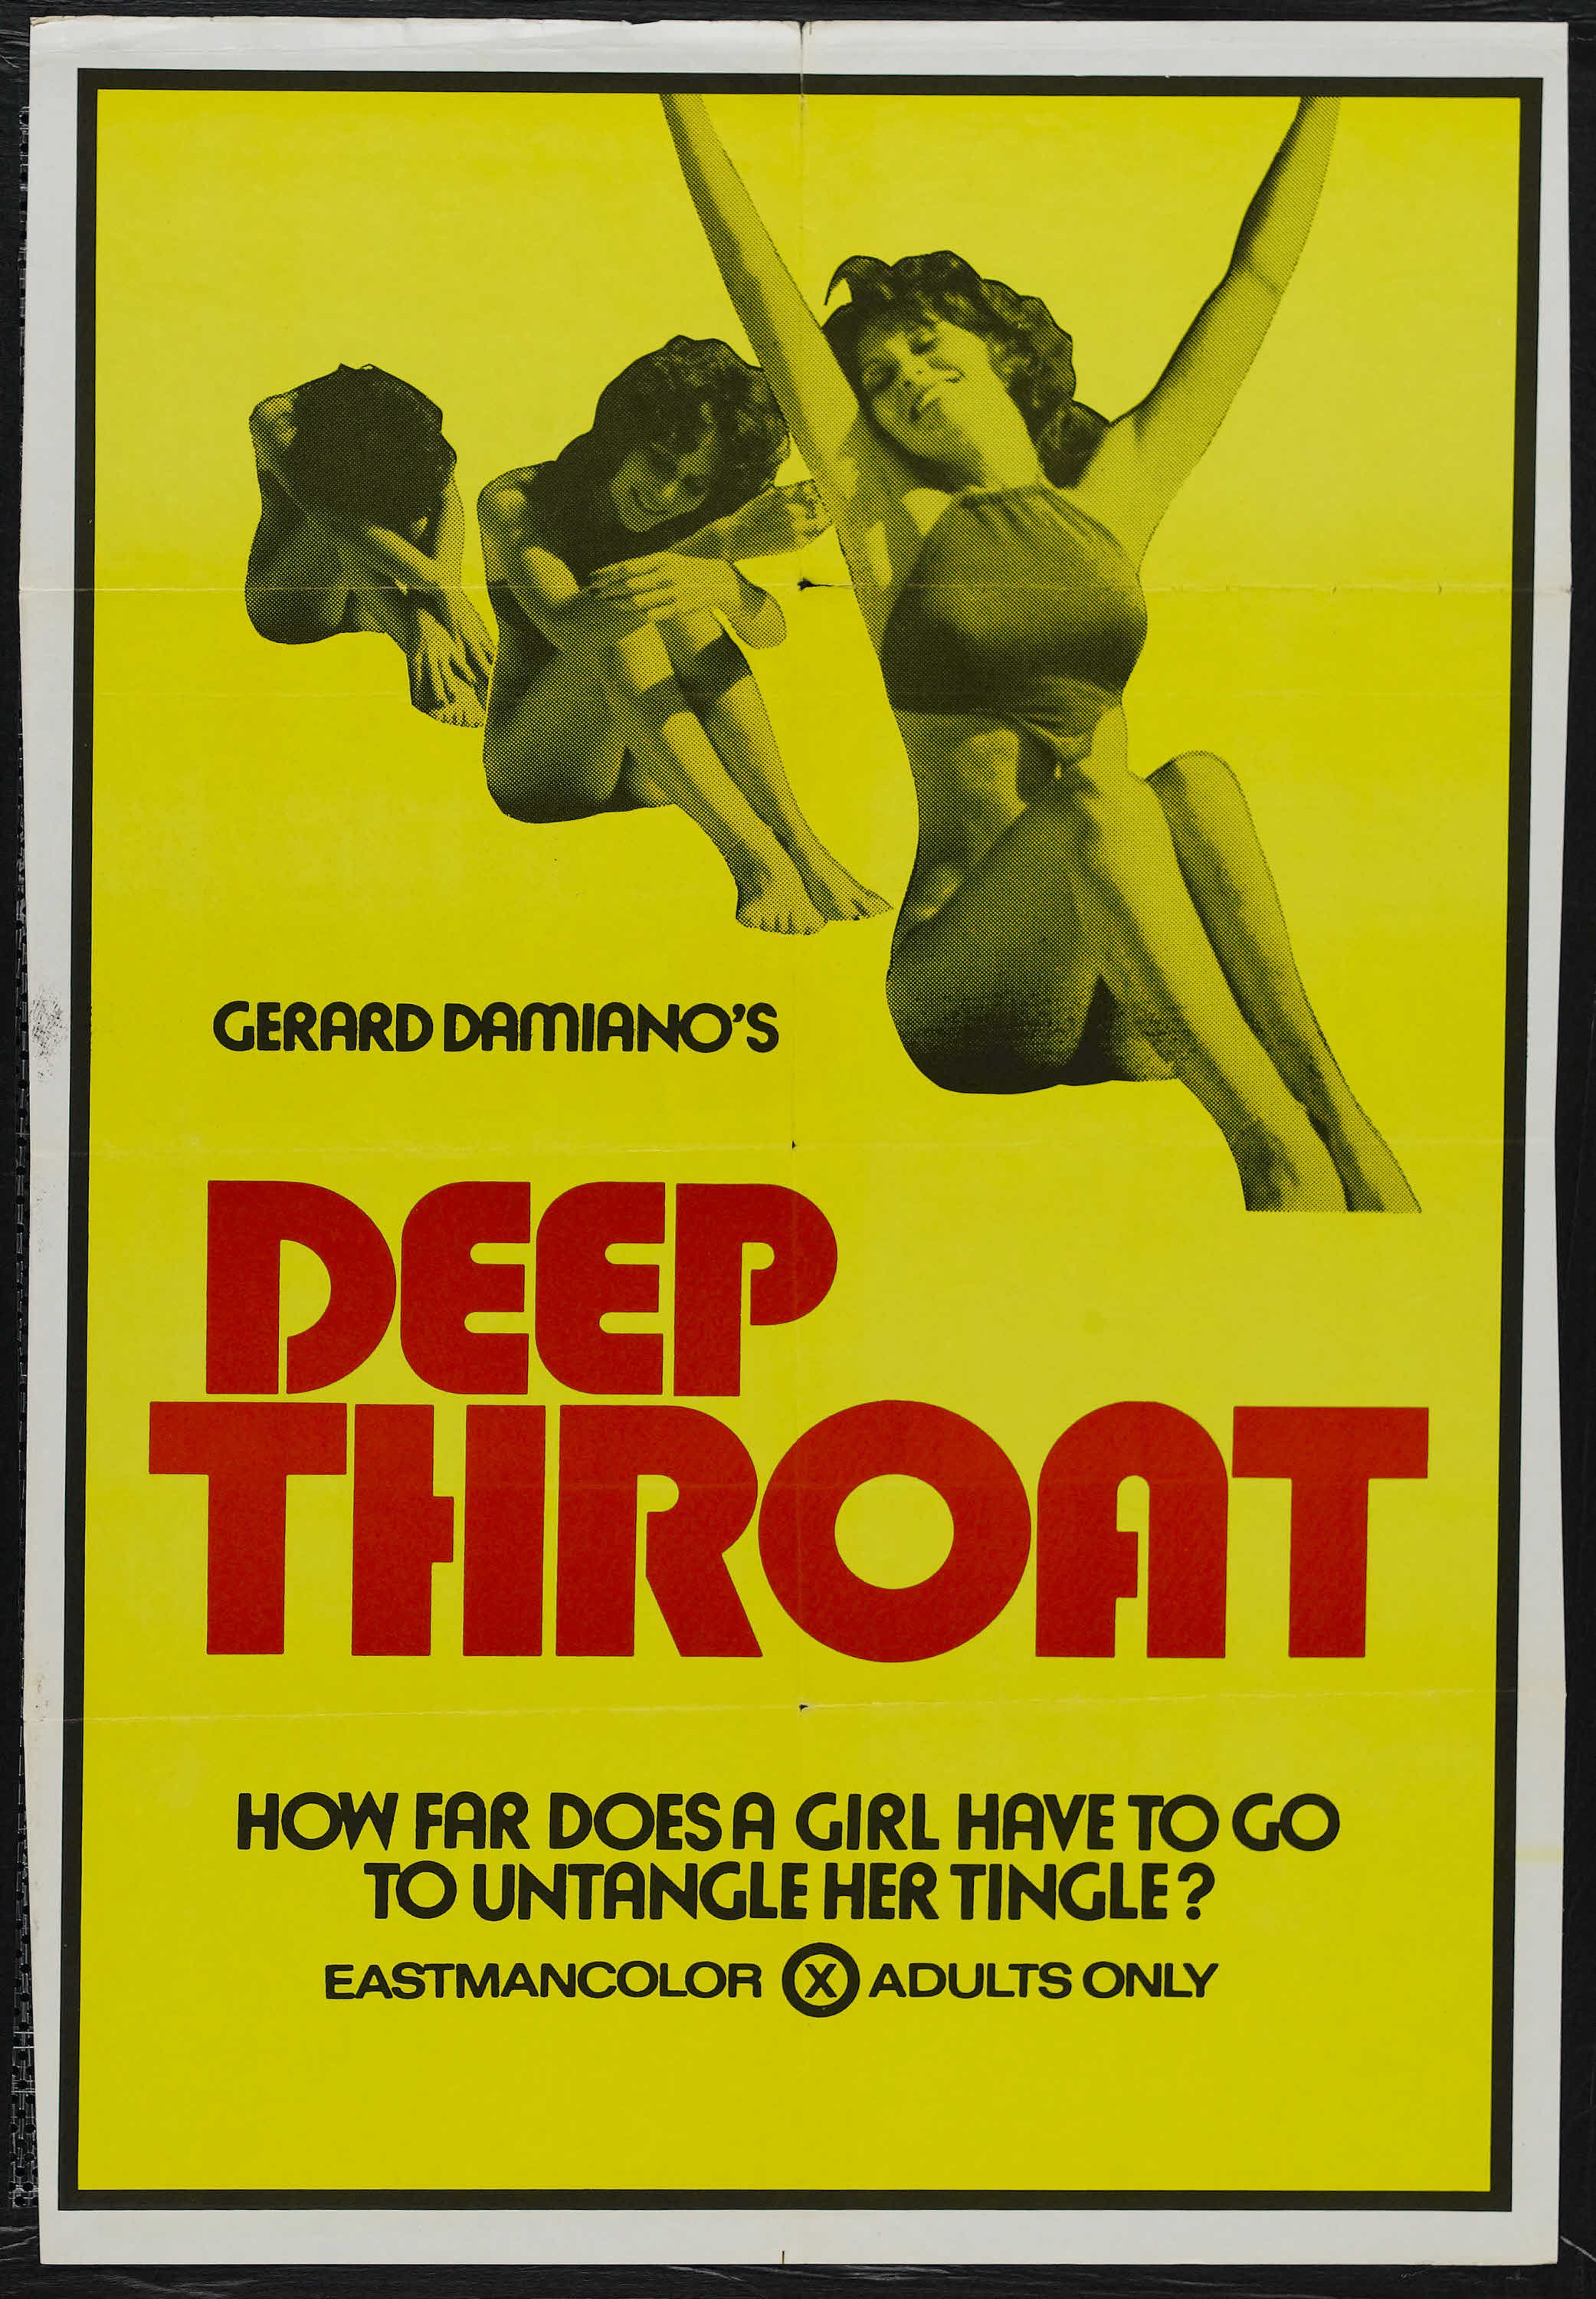 'Deep Throat' poster (Wiki Commons)